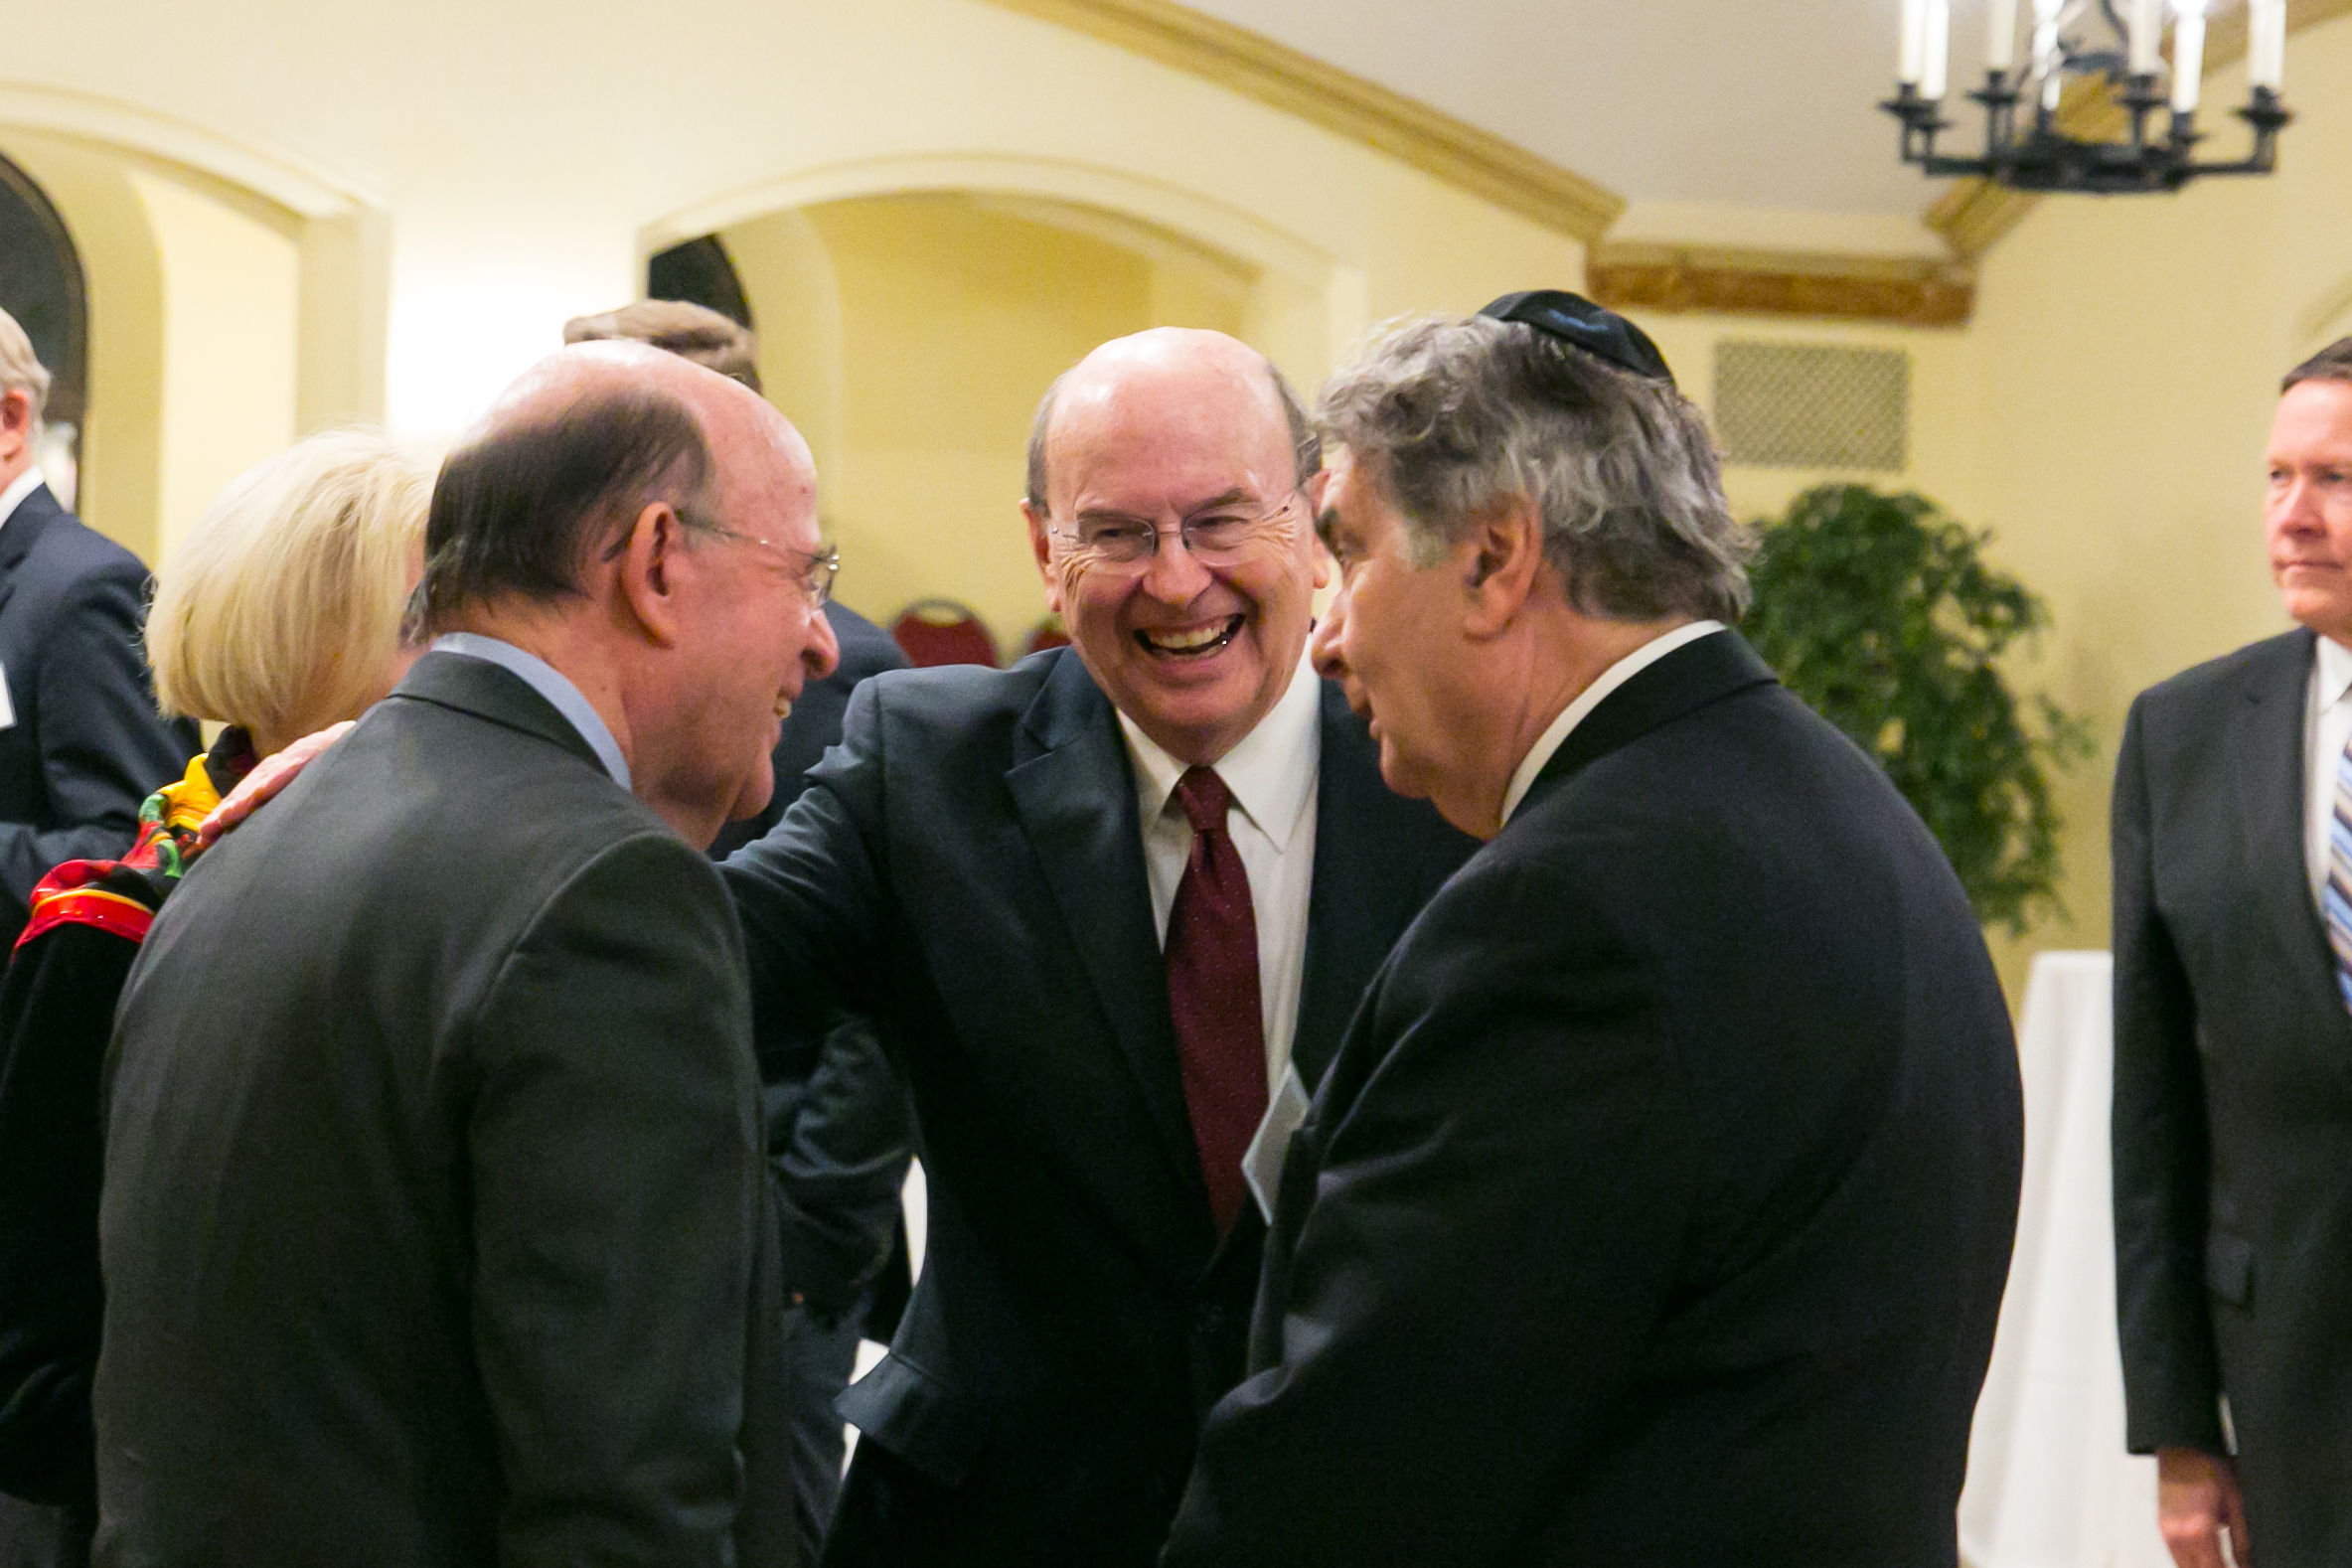 Robert Abrams, the former New York attorney general; Elder Quentin L. Cook of the Quorum of the Twelve Apostles; and Rabbi Joseph Potasnik, executive vice president of the New York Board of Rabbis, participate in a meeting sponsored by the New York Latter-day Saint Professional Association on Dec. 18, 2018.